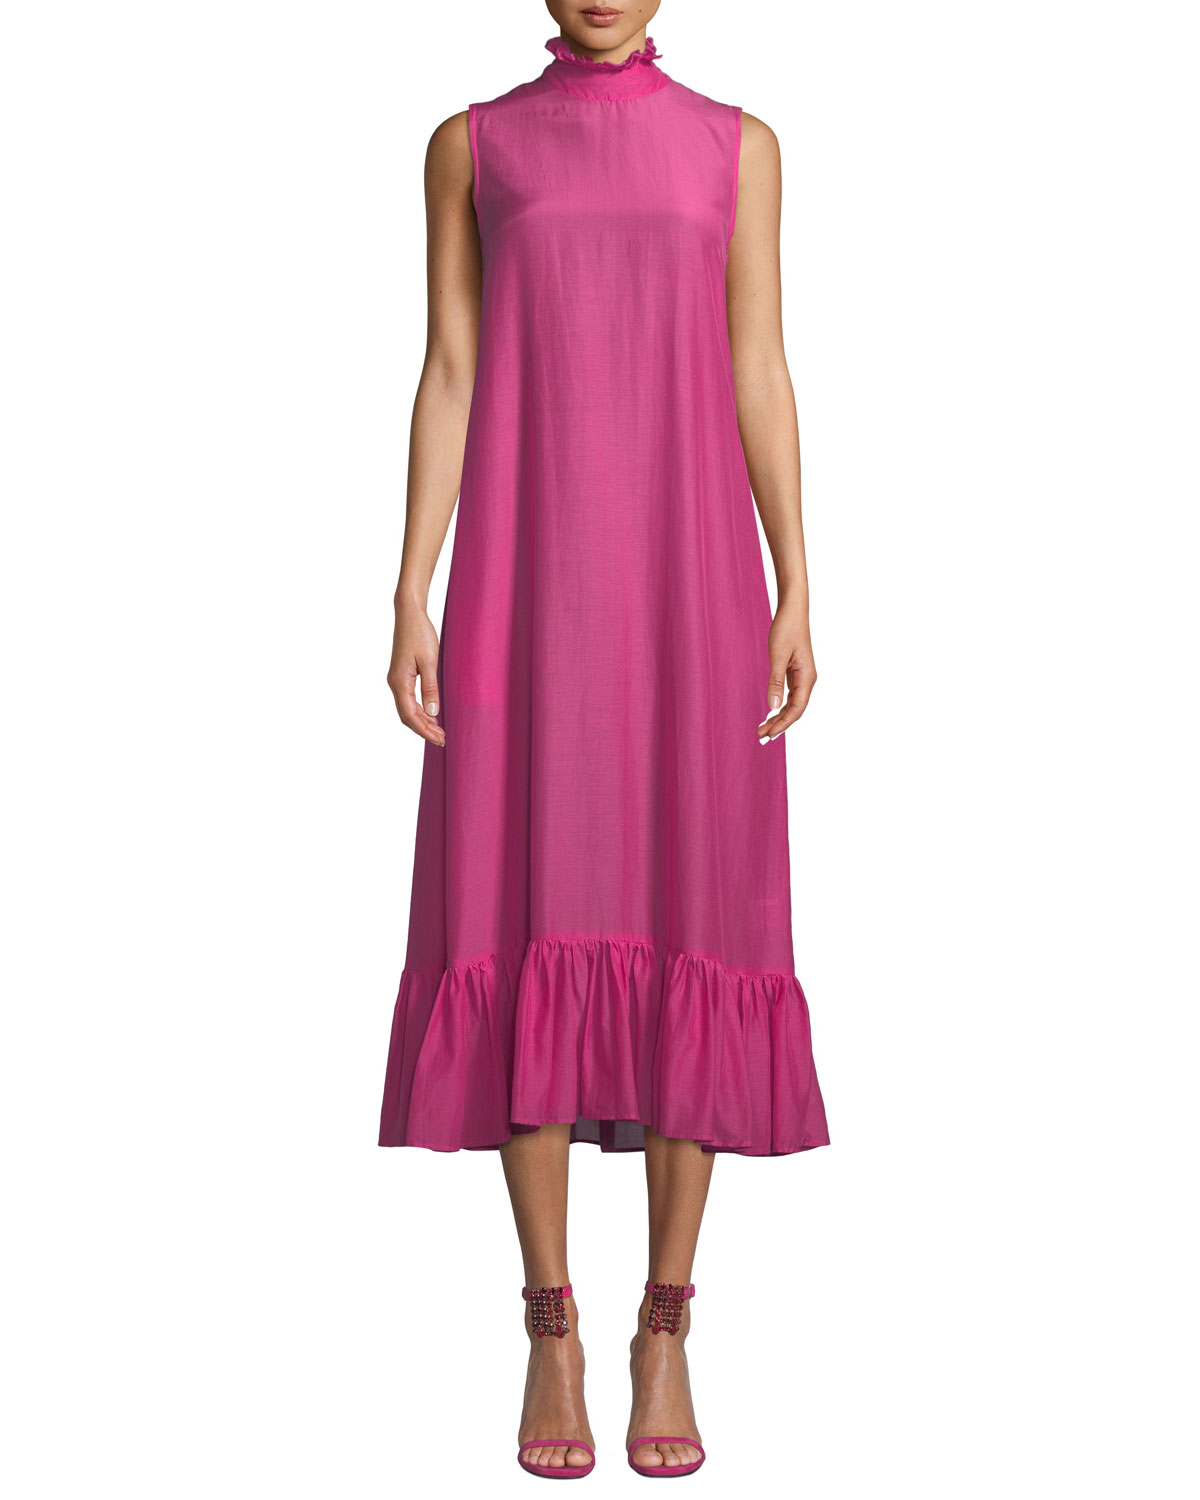 Floating On The Clouds High-Neck Dress in Pink